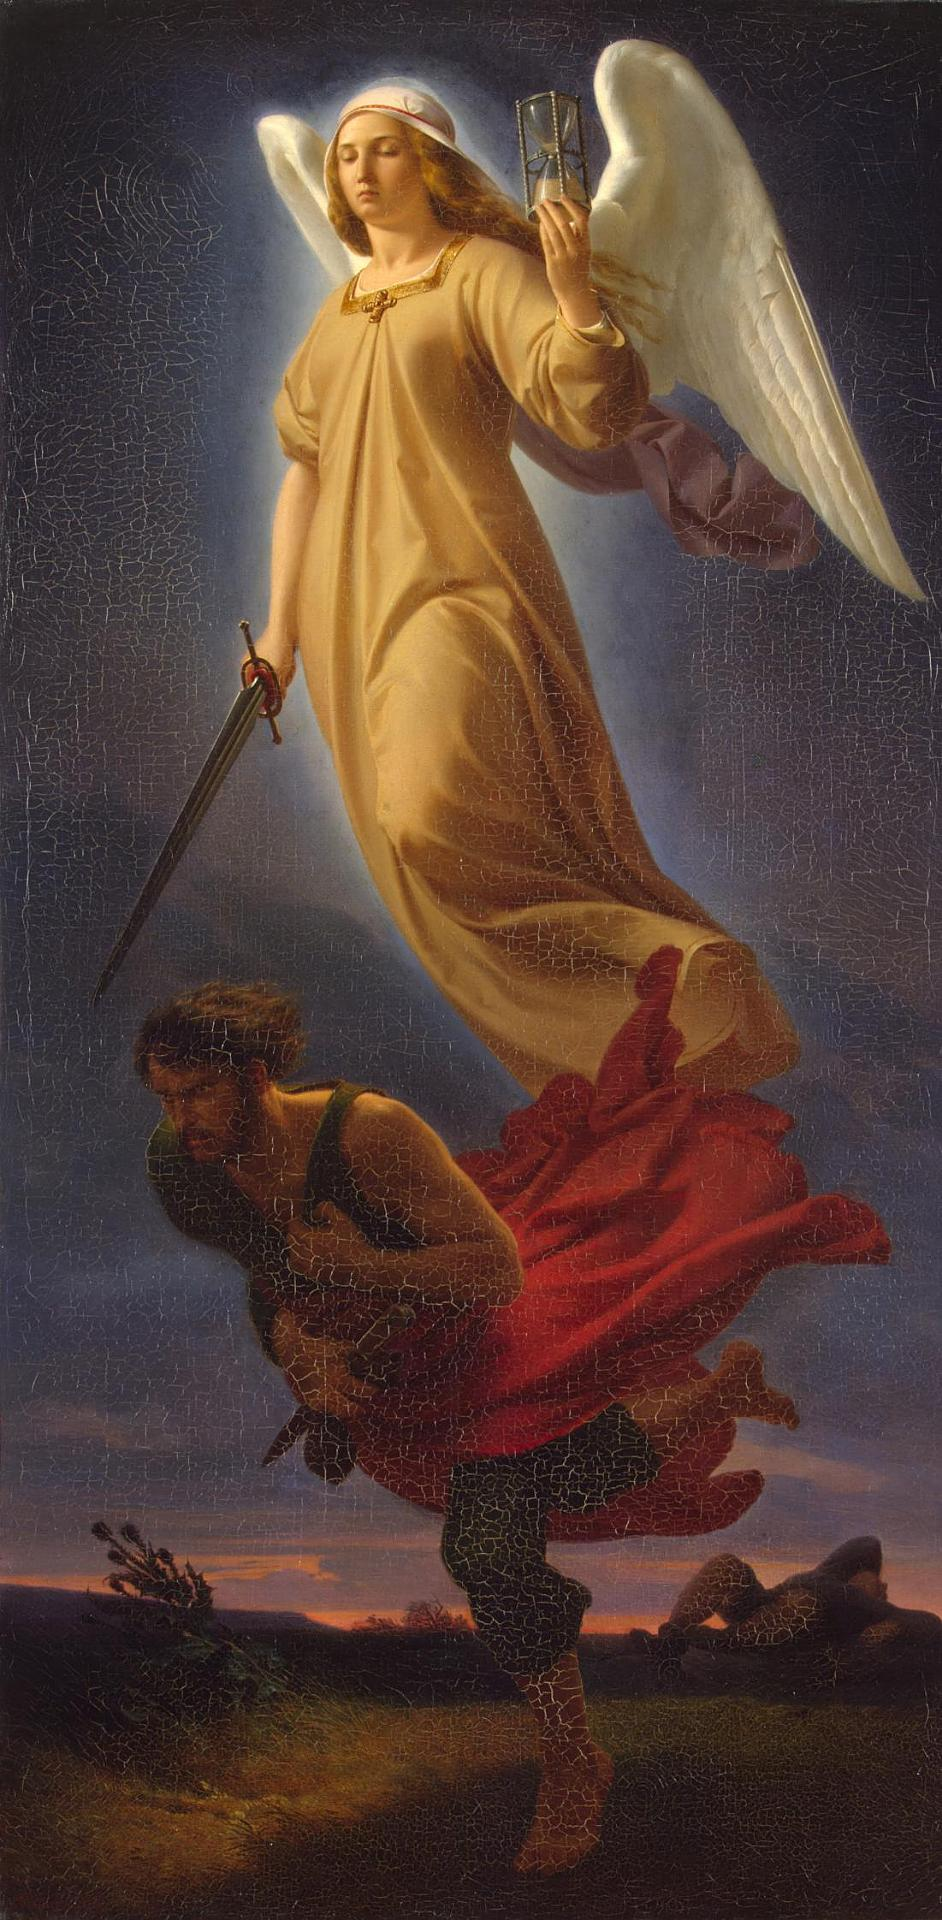 https://i1.wp.com/upload.wikimedia.org/wikipedia/commons/6/61/Alfred_Rethel_002.jpg